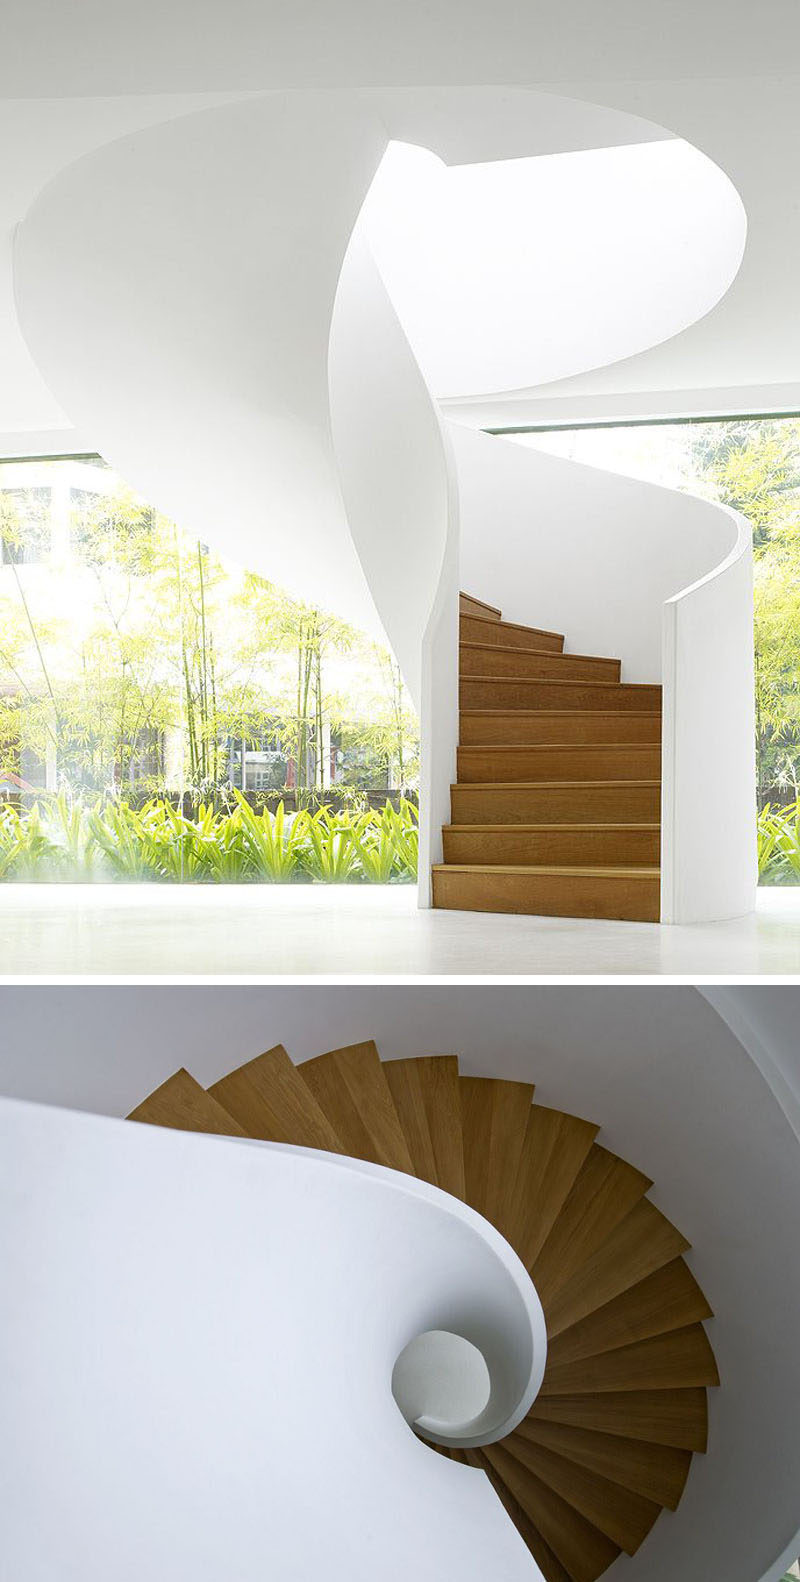 The smooth appearance of this modern white and wood spiral staircase makes it look like it could have simply twisted down from the ceiling. #SpiralStairs #SpiralStaircase #ModernSpiralStairs